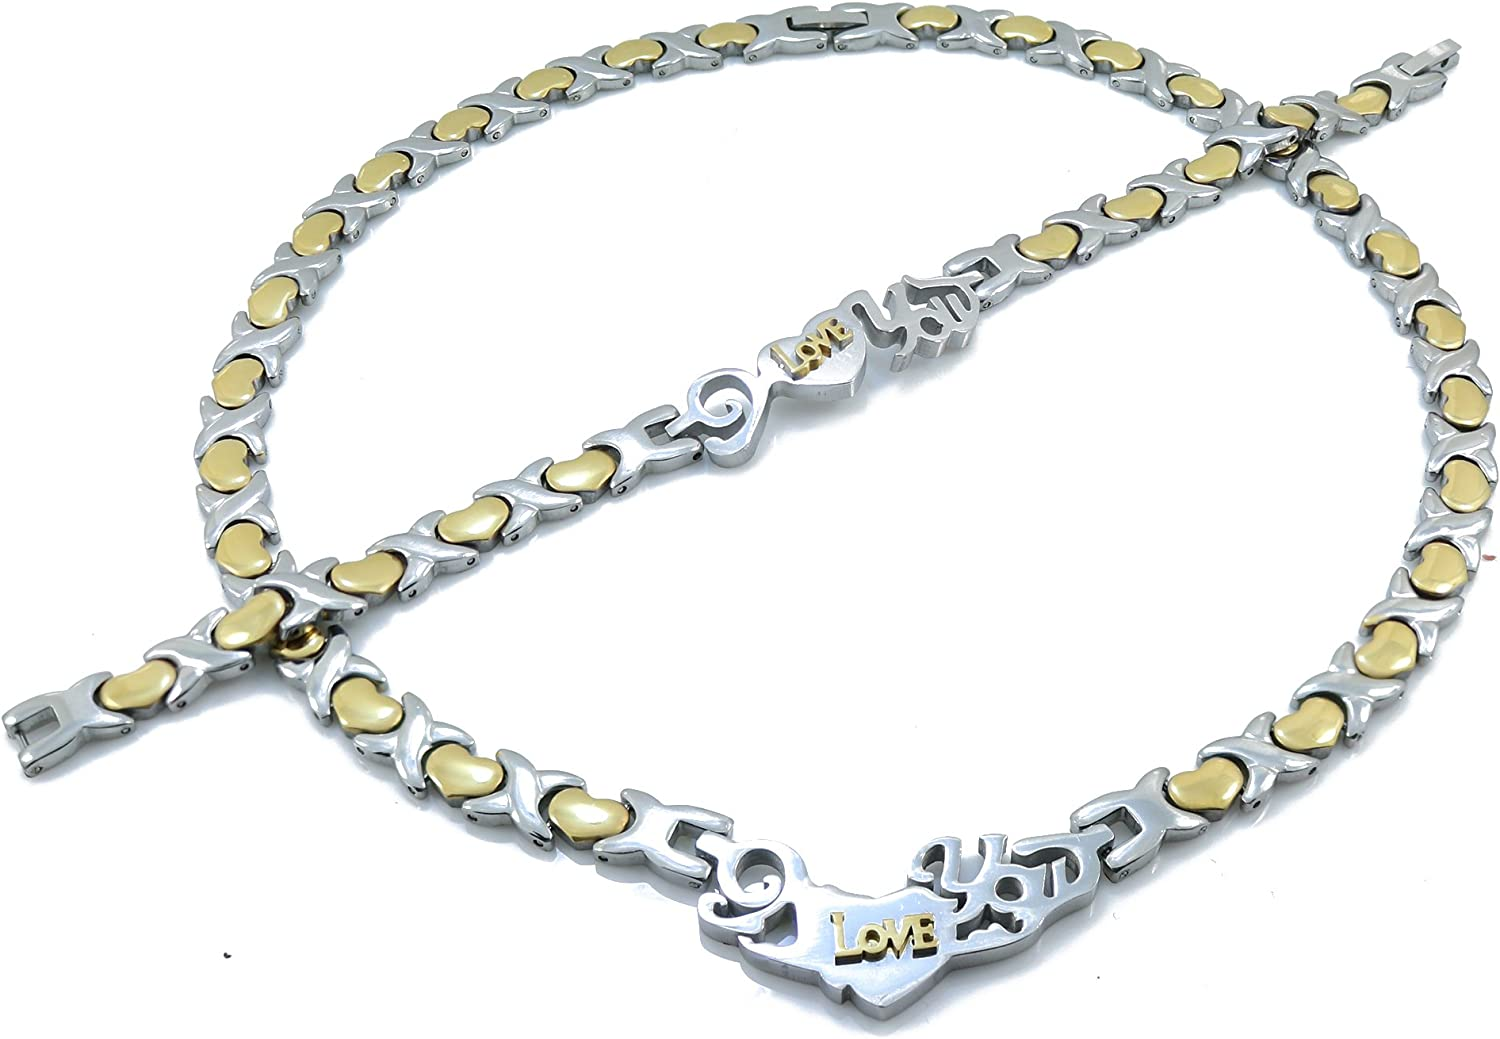 2 TONE I LOVE YOU HUGS AND KISSES NECKLACE AND BRACELET SET XOXO STAINLESS STEEL 20